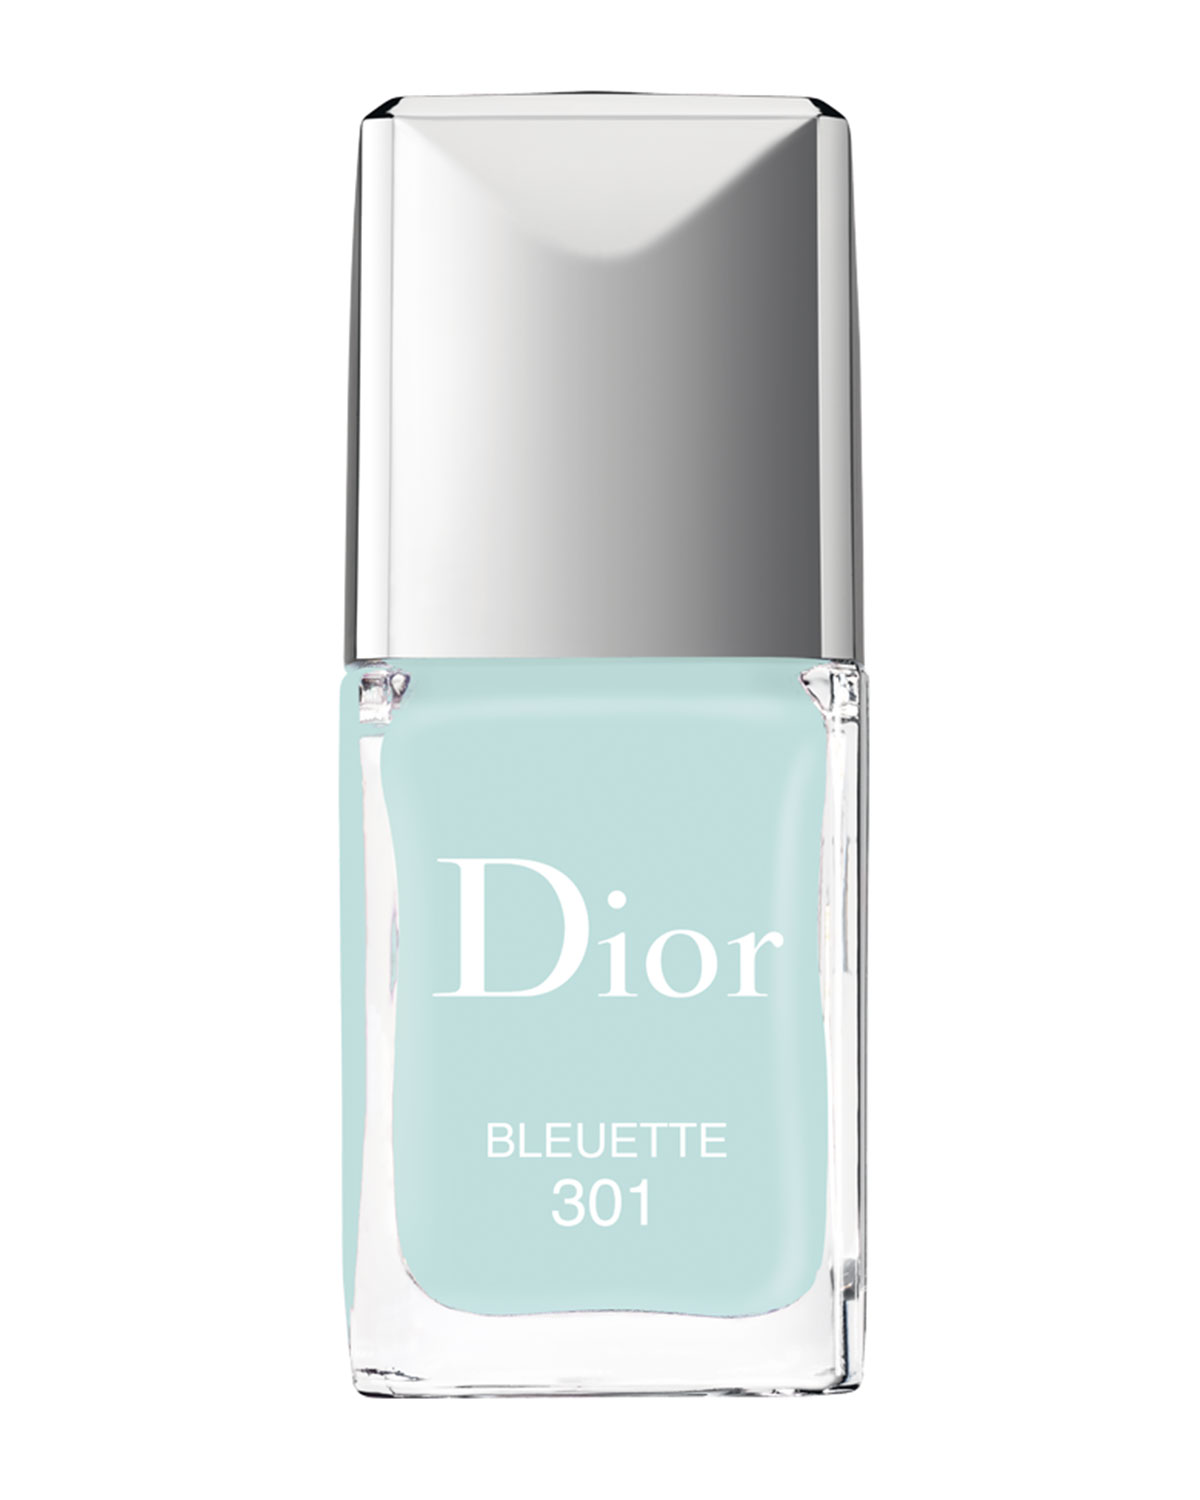 Dior Beauty Limited Edition Dior Vernis - Glowing Gardens Collection, 301 Bleuette